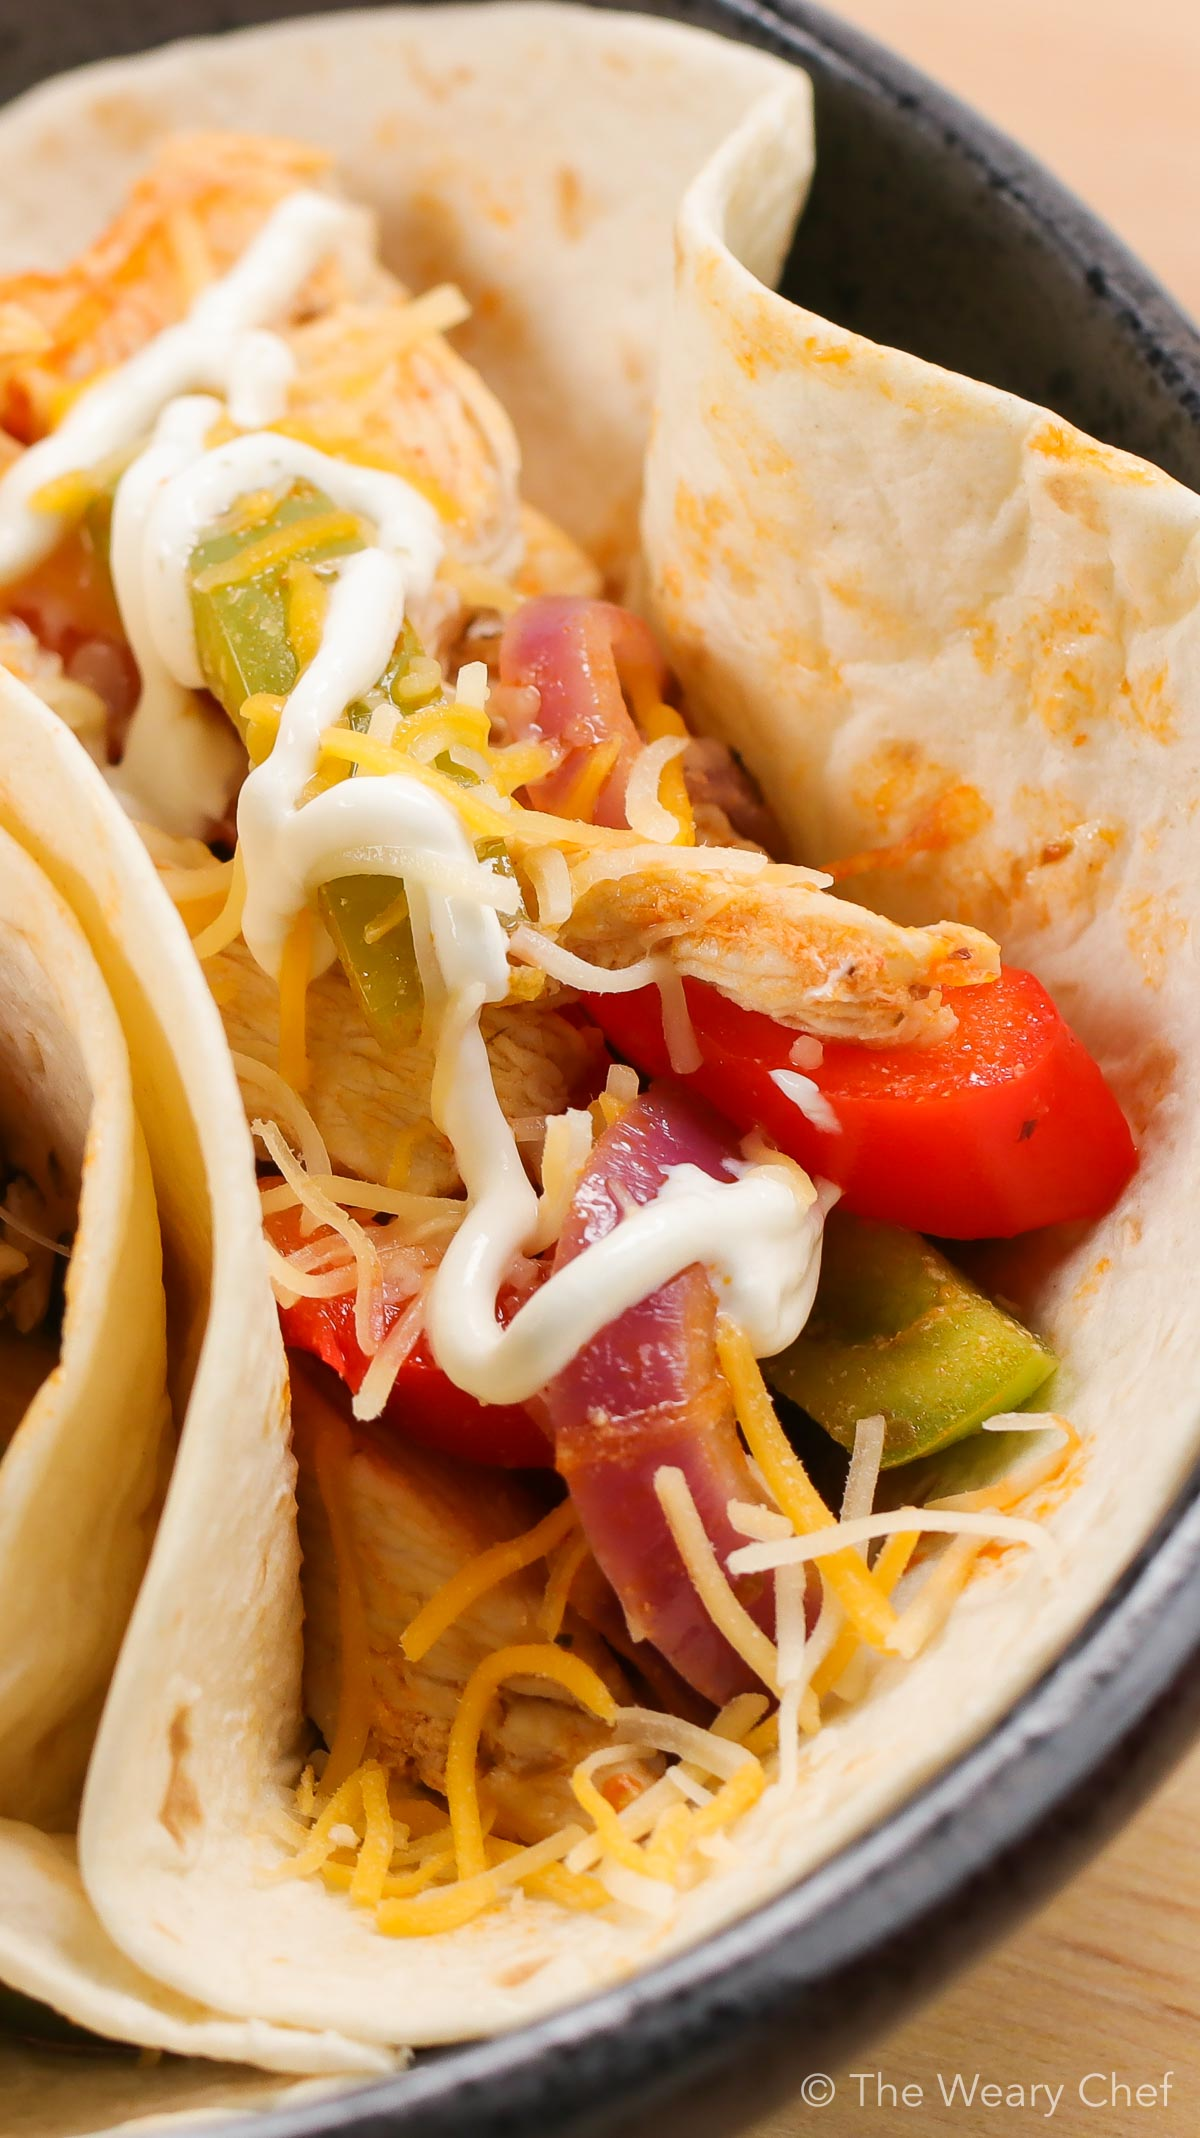 Add some spice to your dinner with these Quick Buffalo Chicken Fajitas. It will take you no time at all to get them on the table, and your family will surely love them! #buffalo #buffalochicken #tacos #fajitas #easydinner